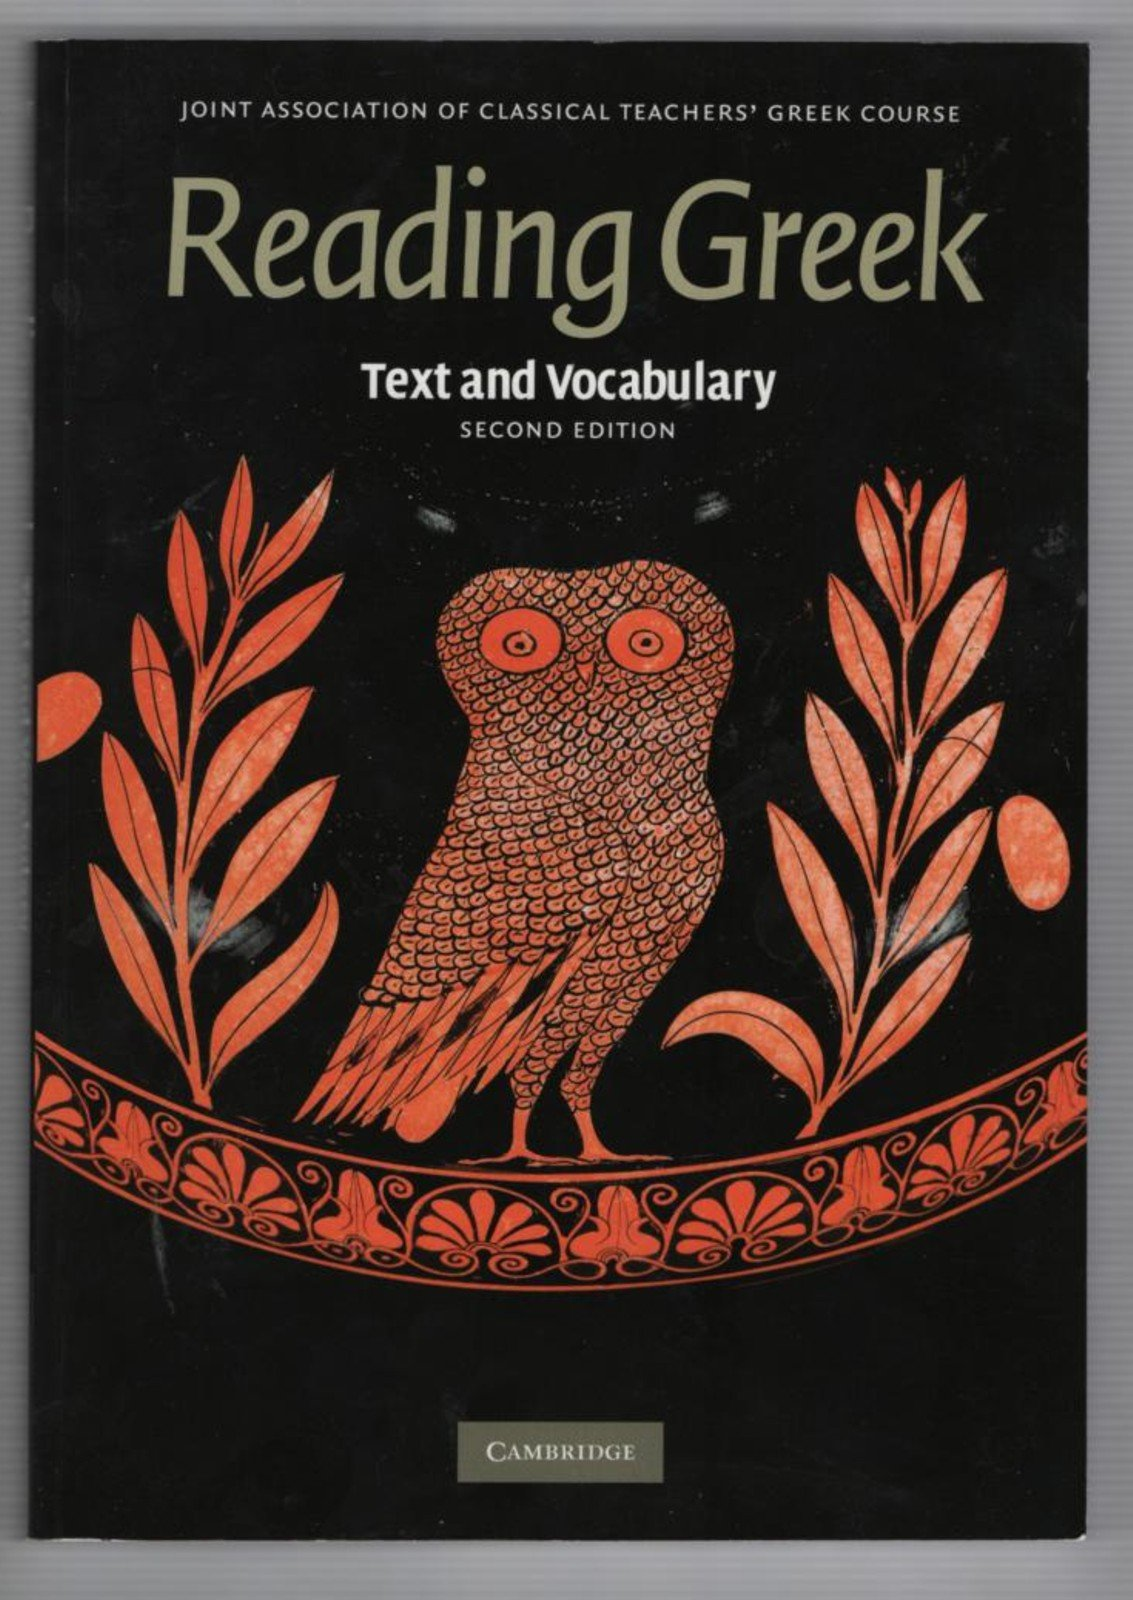 Joint Association of Classical Teachers' Greek Course: Reading Greek: Text and Vocabulary: Second Edition PDF